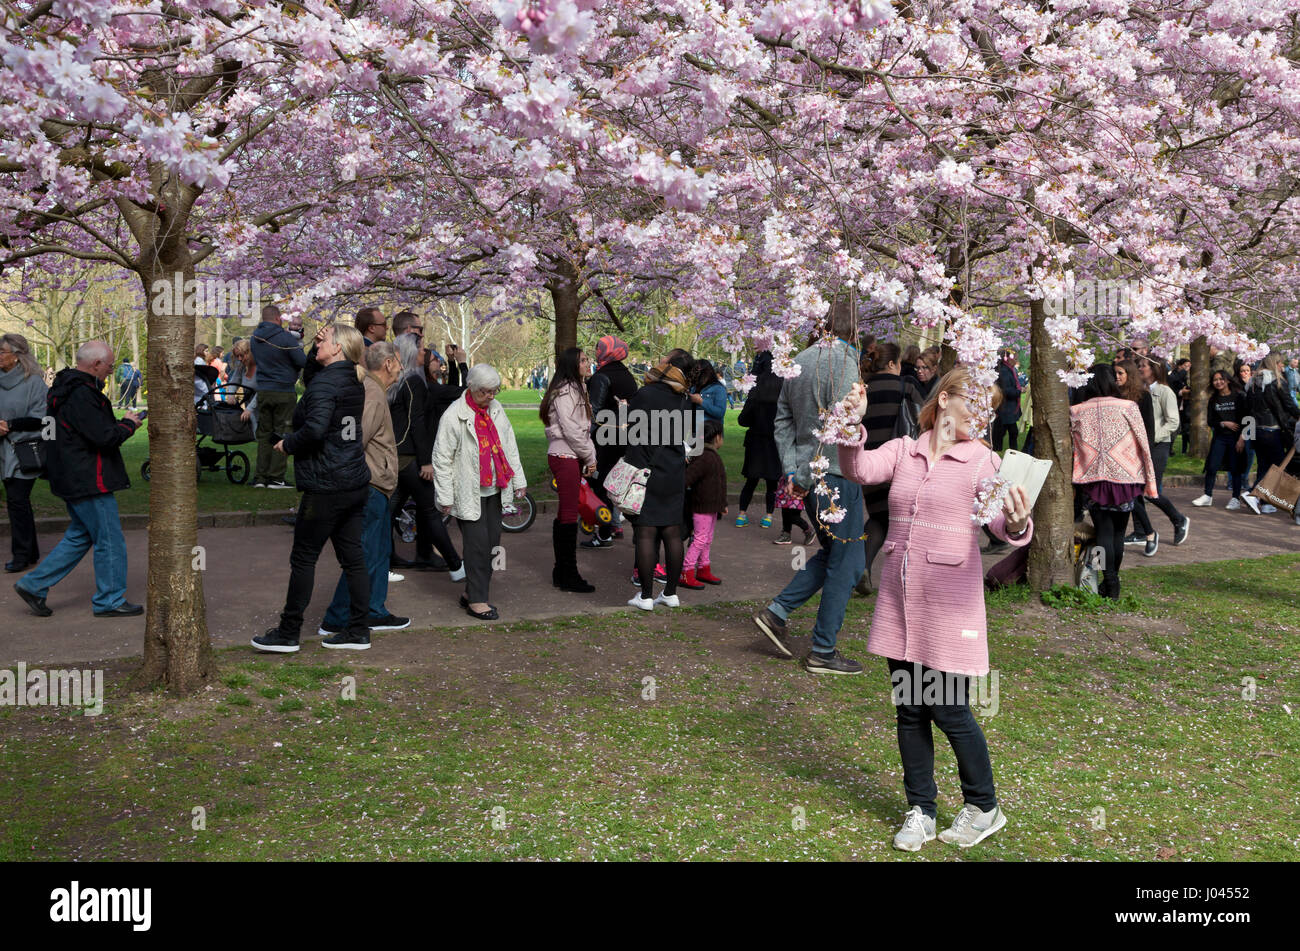 The Cherry Blossom Avenue at Bispebjerg Cemetery, Copenhagen, Denmark, has seen a visitor boom in recent years. - Stock Image